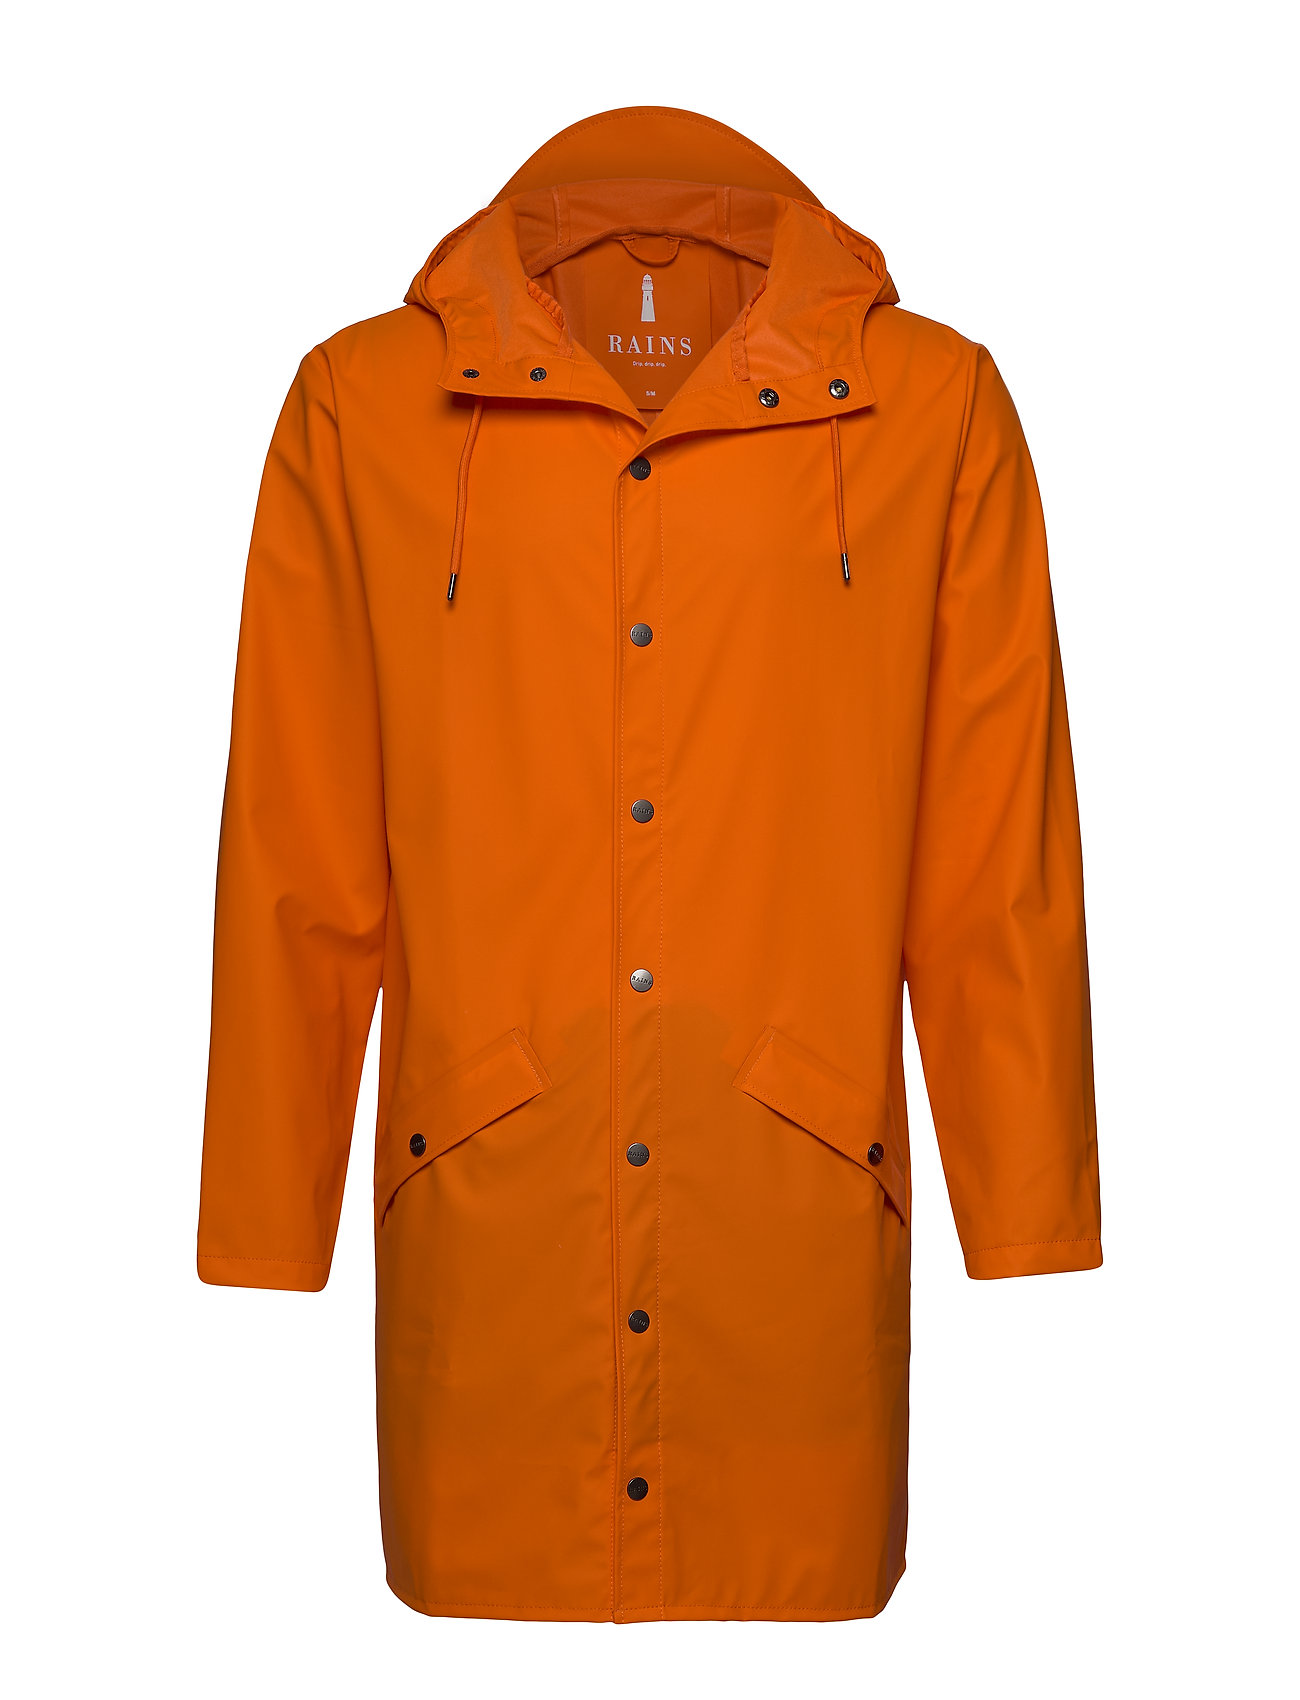 Rains Long Jacket - 83 FIRE ORANGE